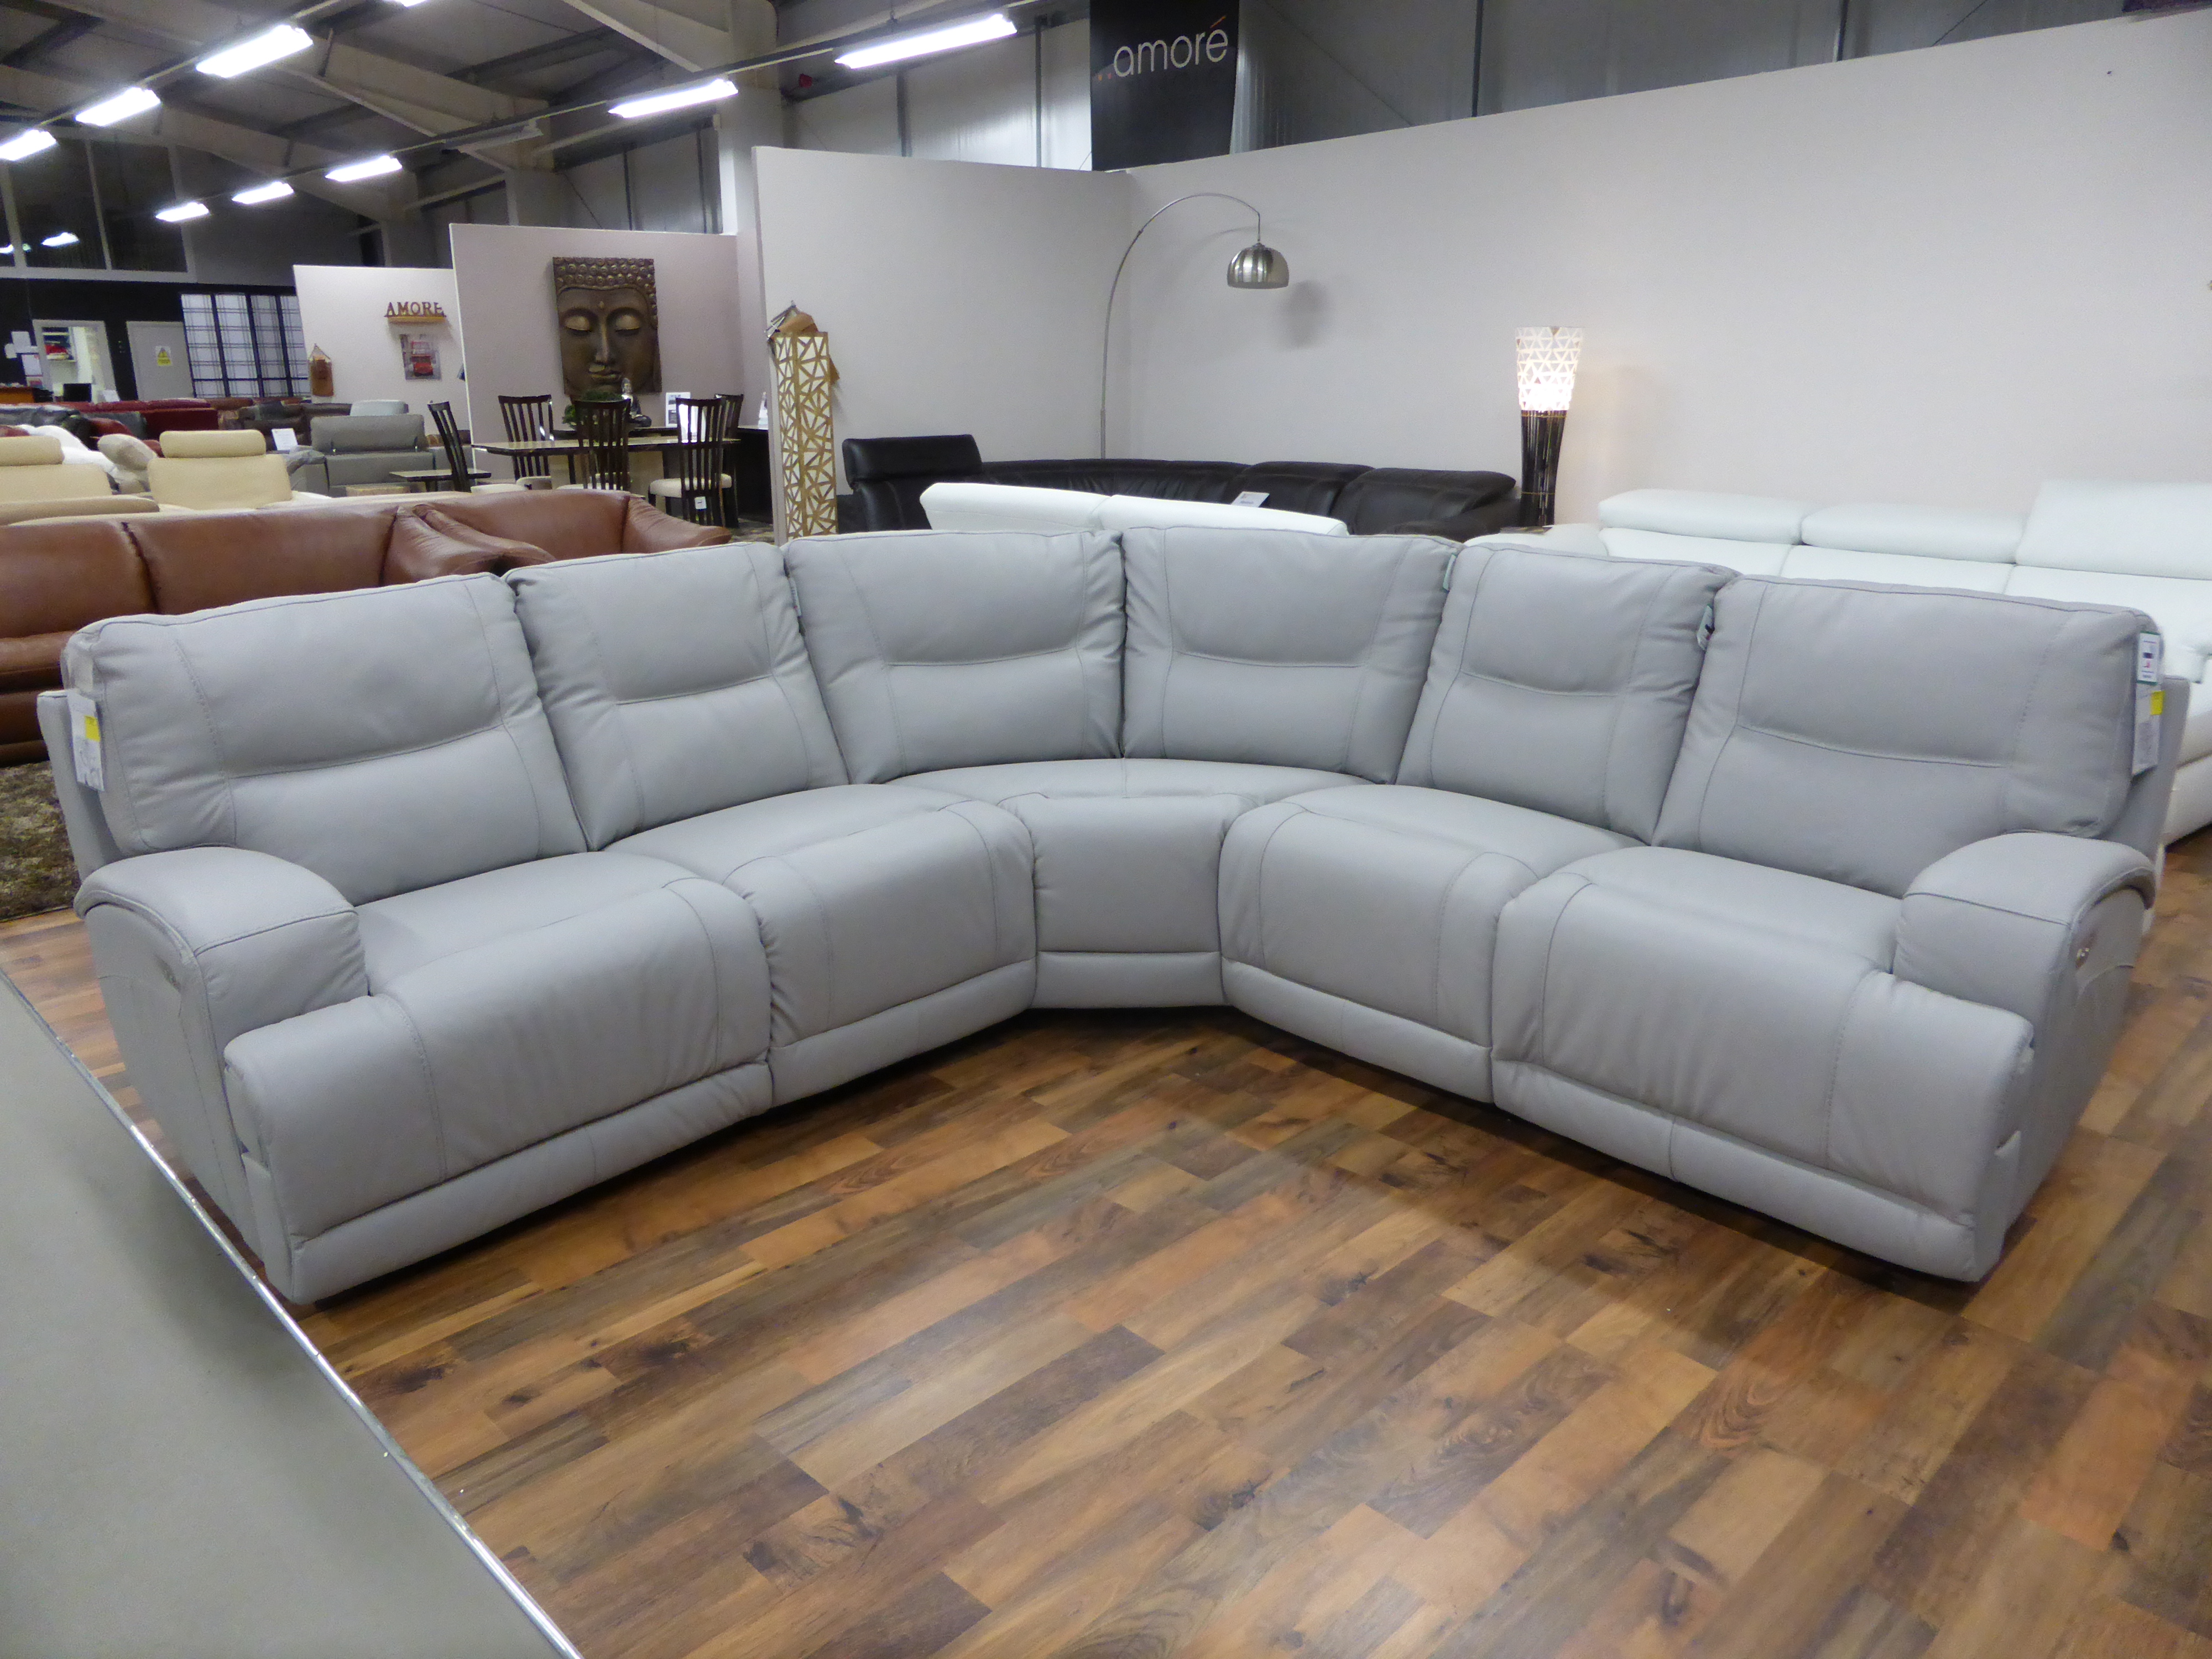 electric recliner leather sofas uk 66 inch outdoor sofa cushion venice reclining corner furnimax brands outlet